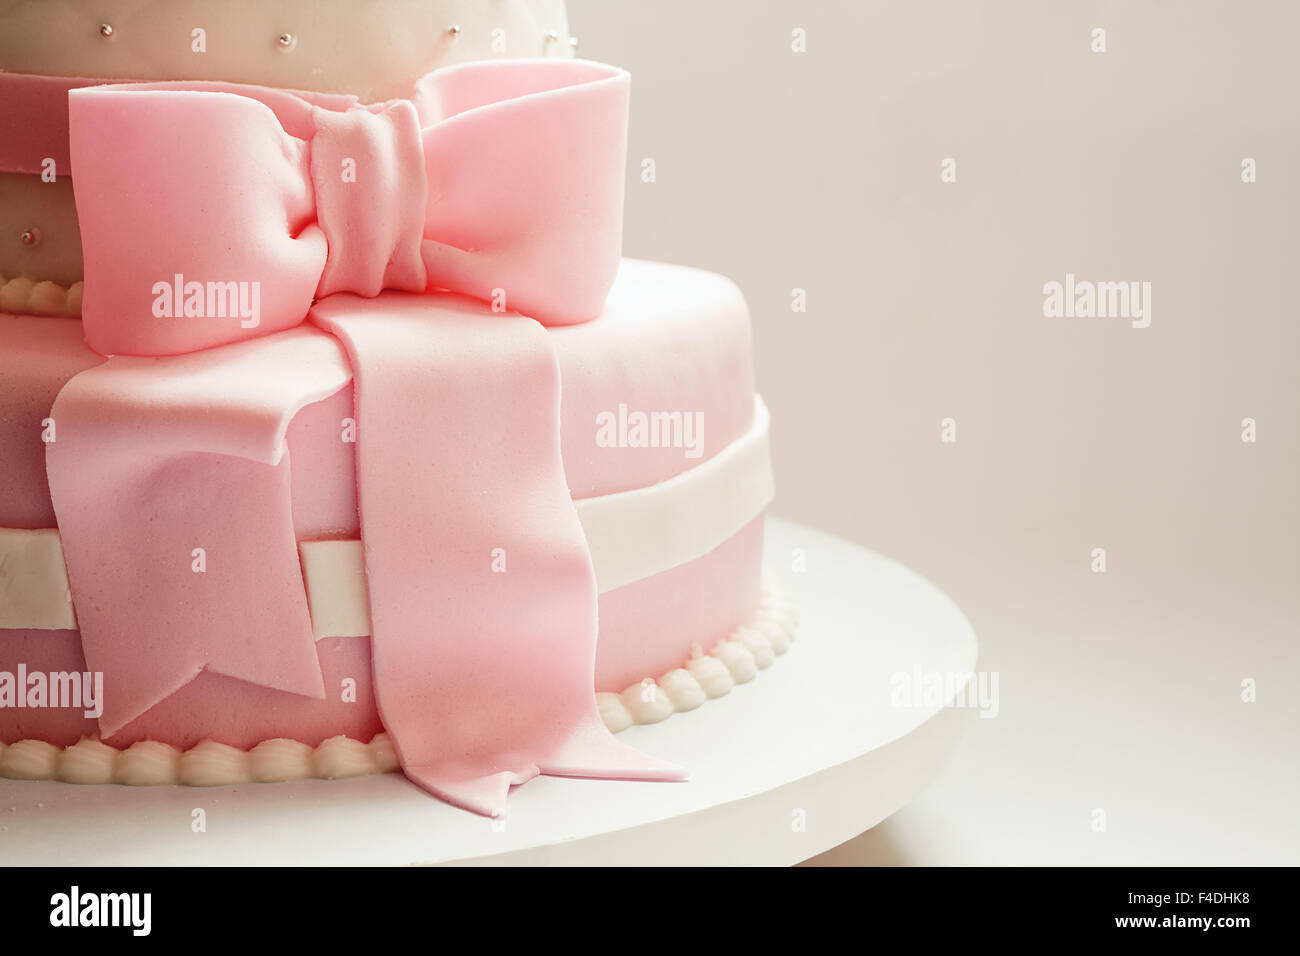 Ribbon details on a birthday cake made for baby girl. - Stock Image